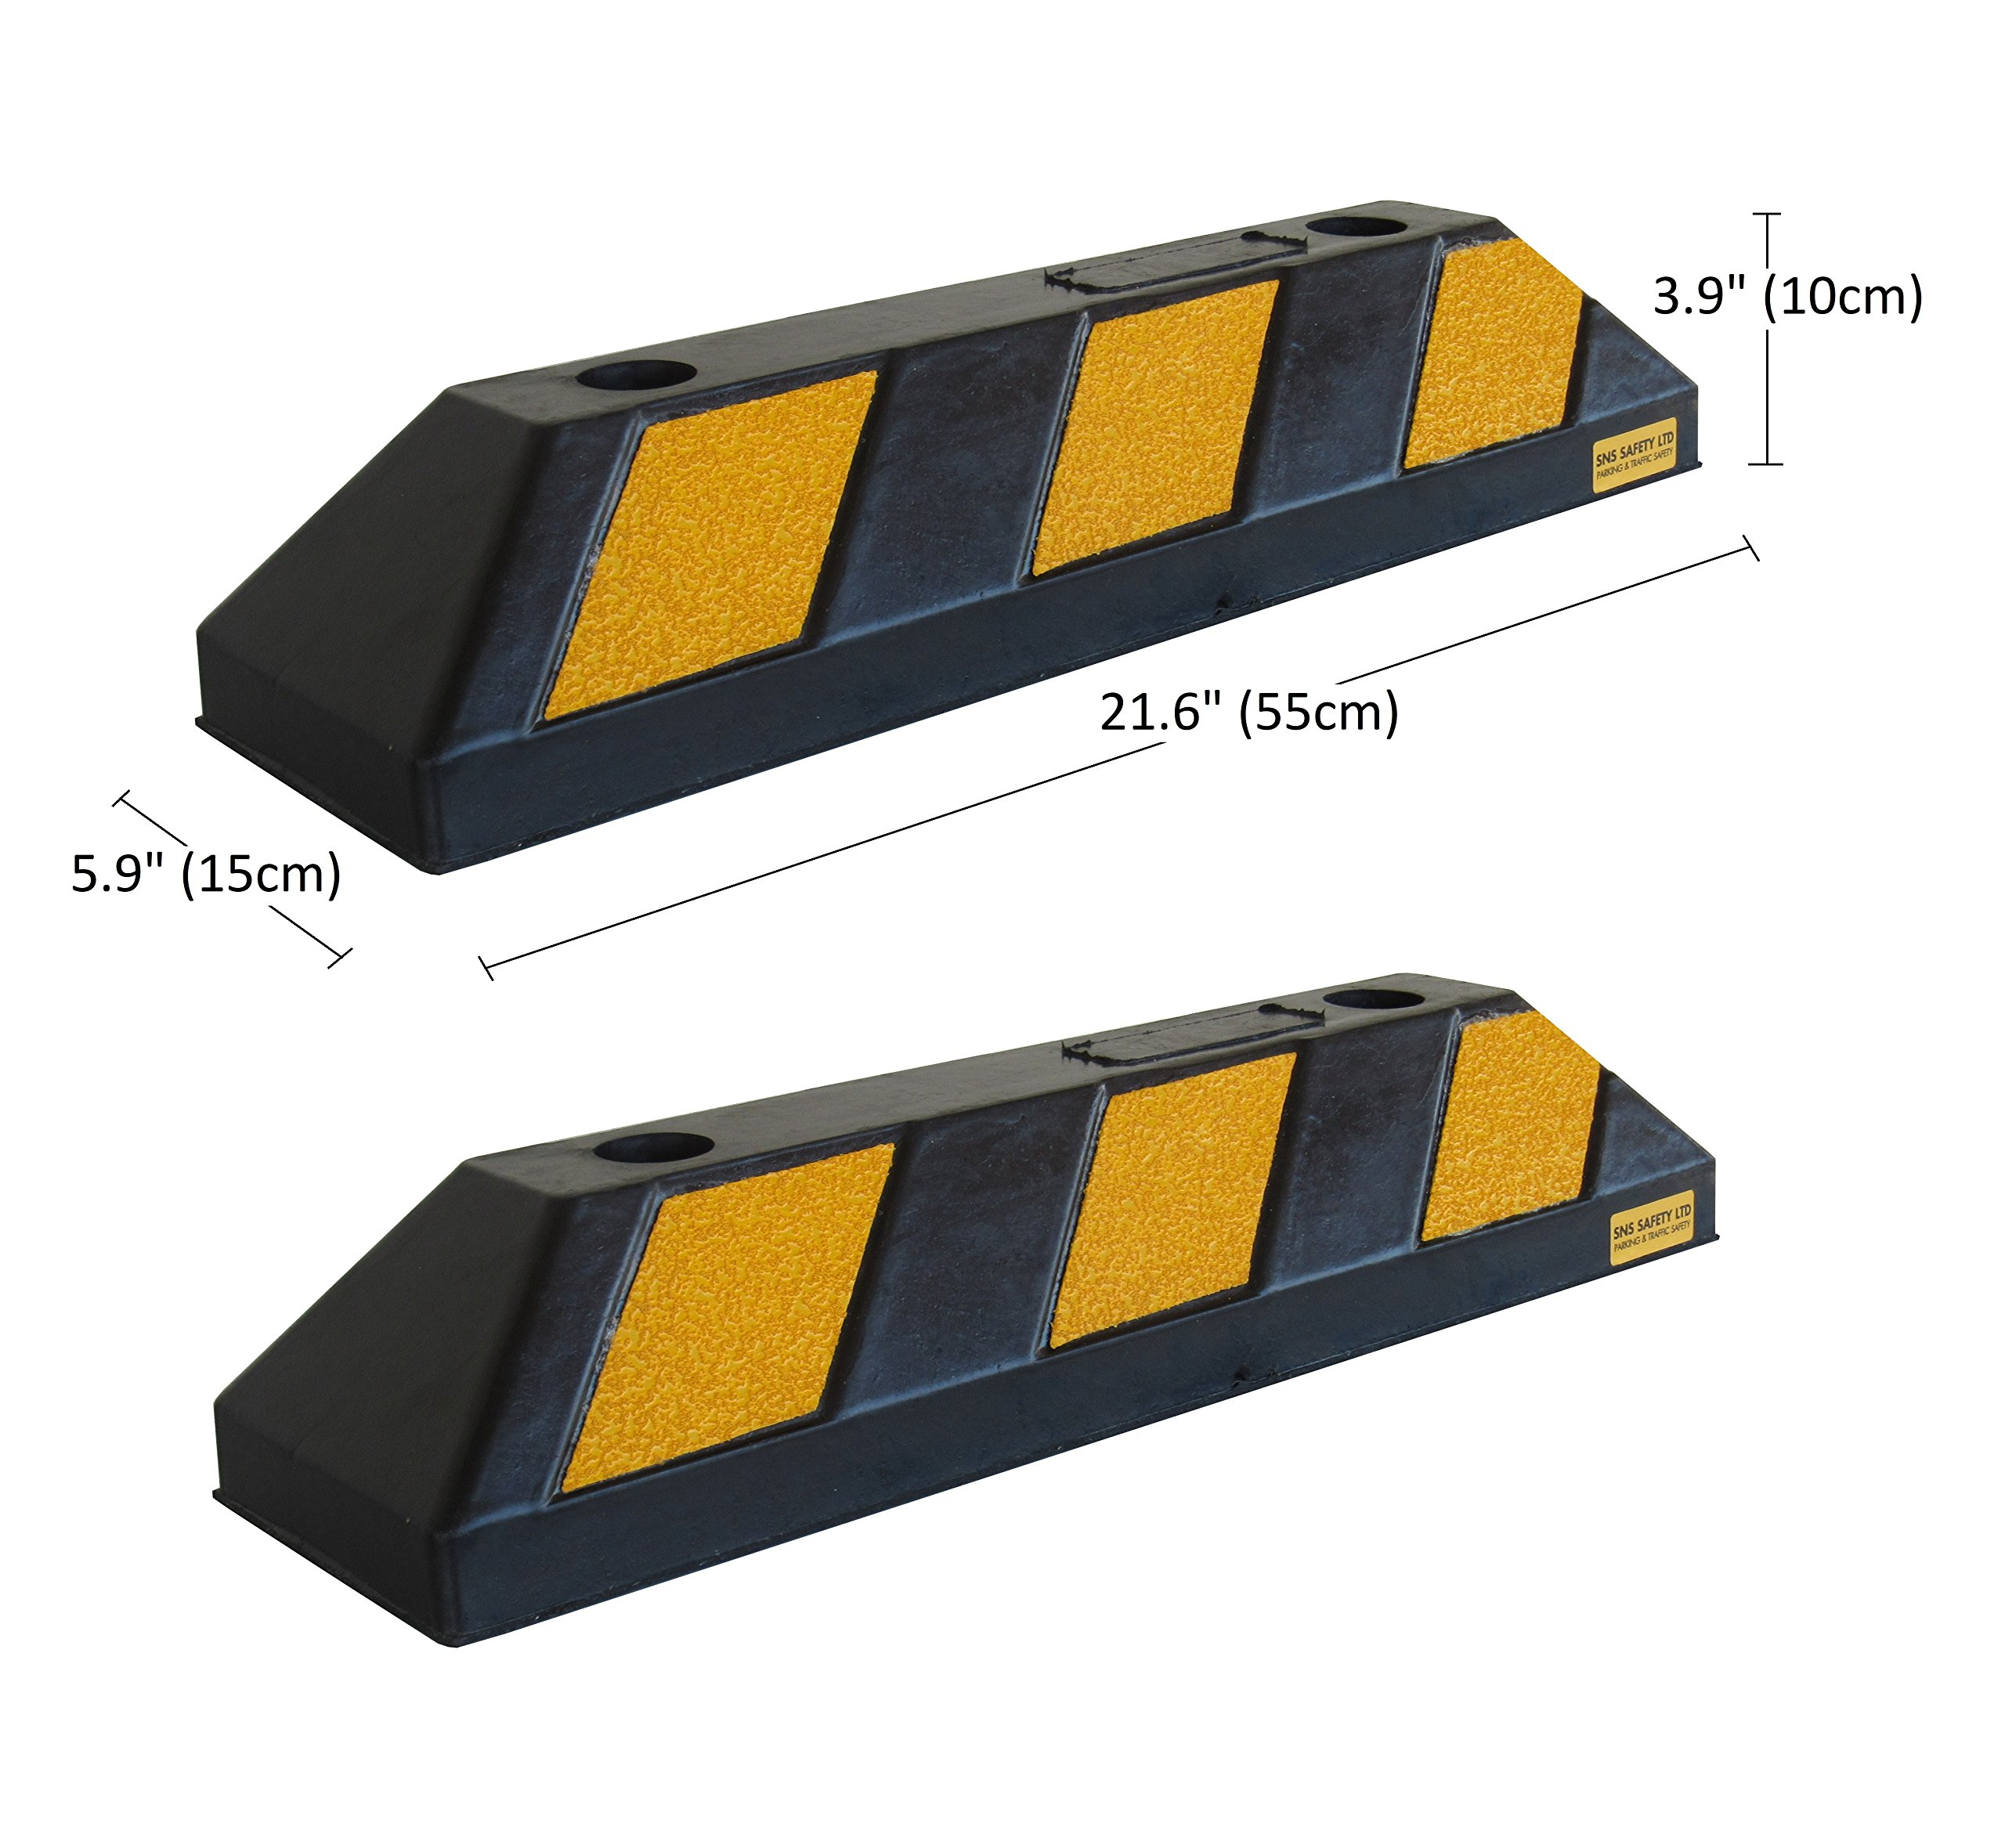 SNS SAFETY LTD RWS-4x2 Rubber Parking Wheel Stop for Commercial and Domestic Car Parks and Private Garages, Black and Yellow color, 21.6''x5.9''x3.9'' (55x15x10 cm) (pack of 2)